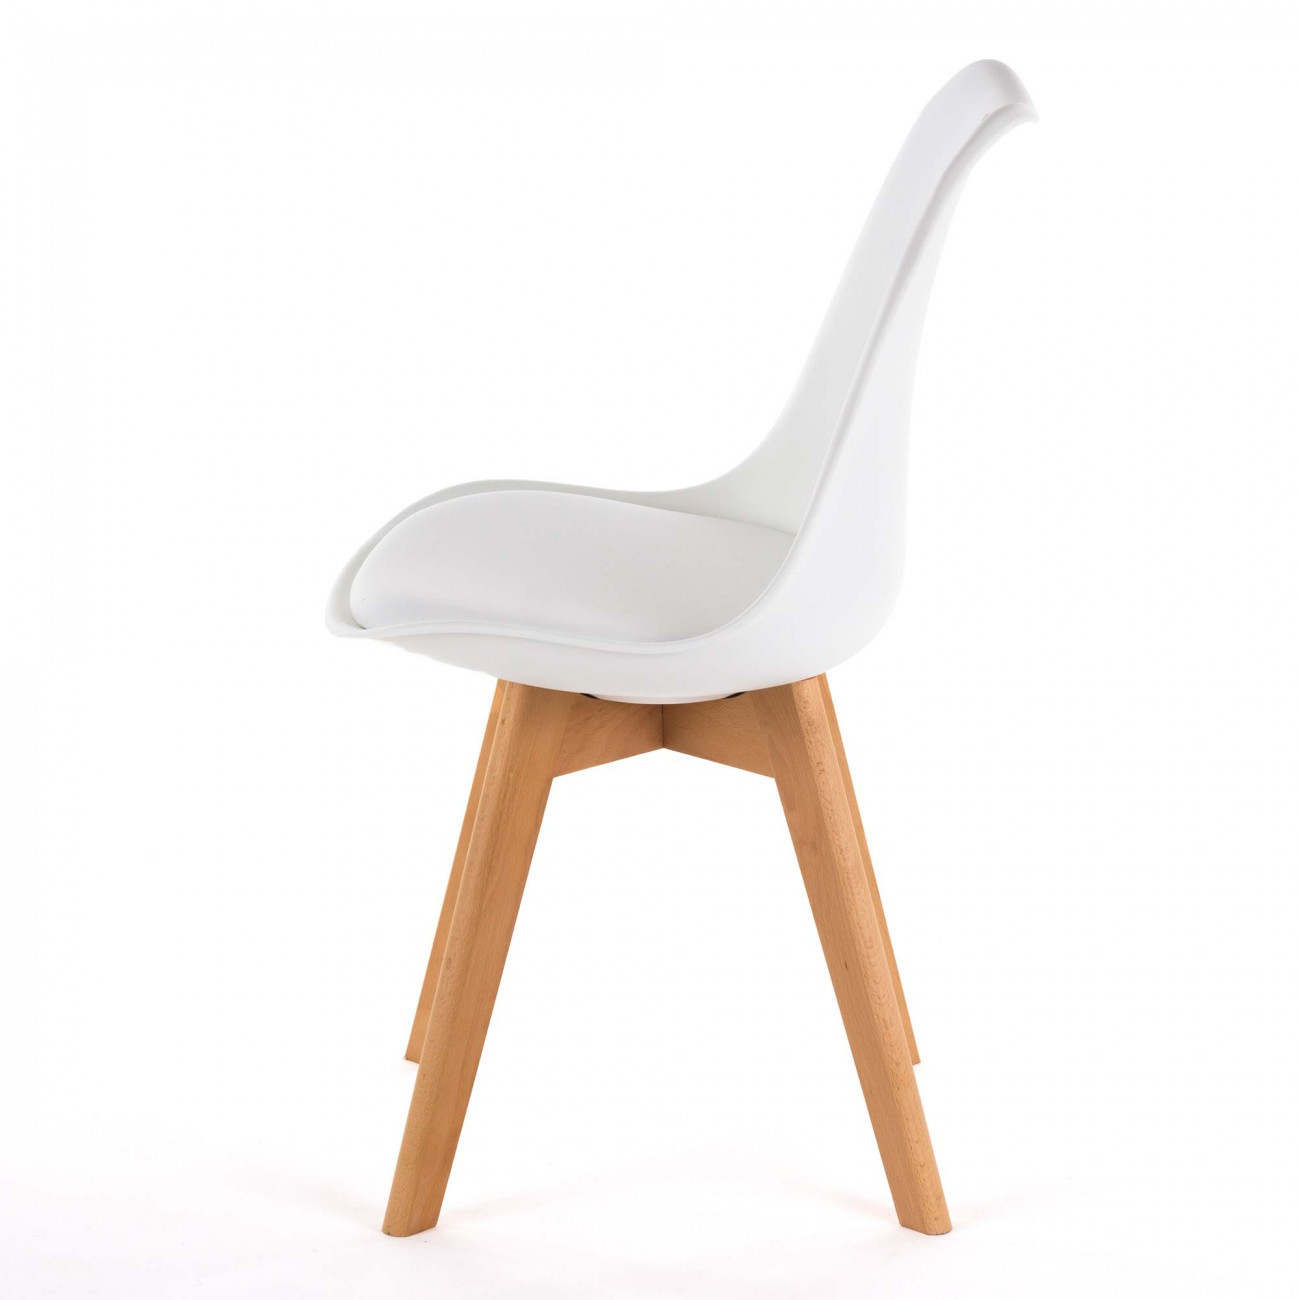 Chaise de design si ge de bureau salon retro rembourr e for Chaise grillage design